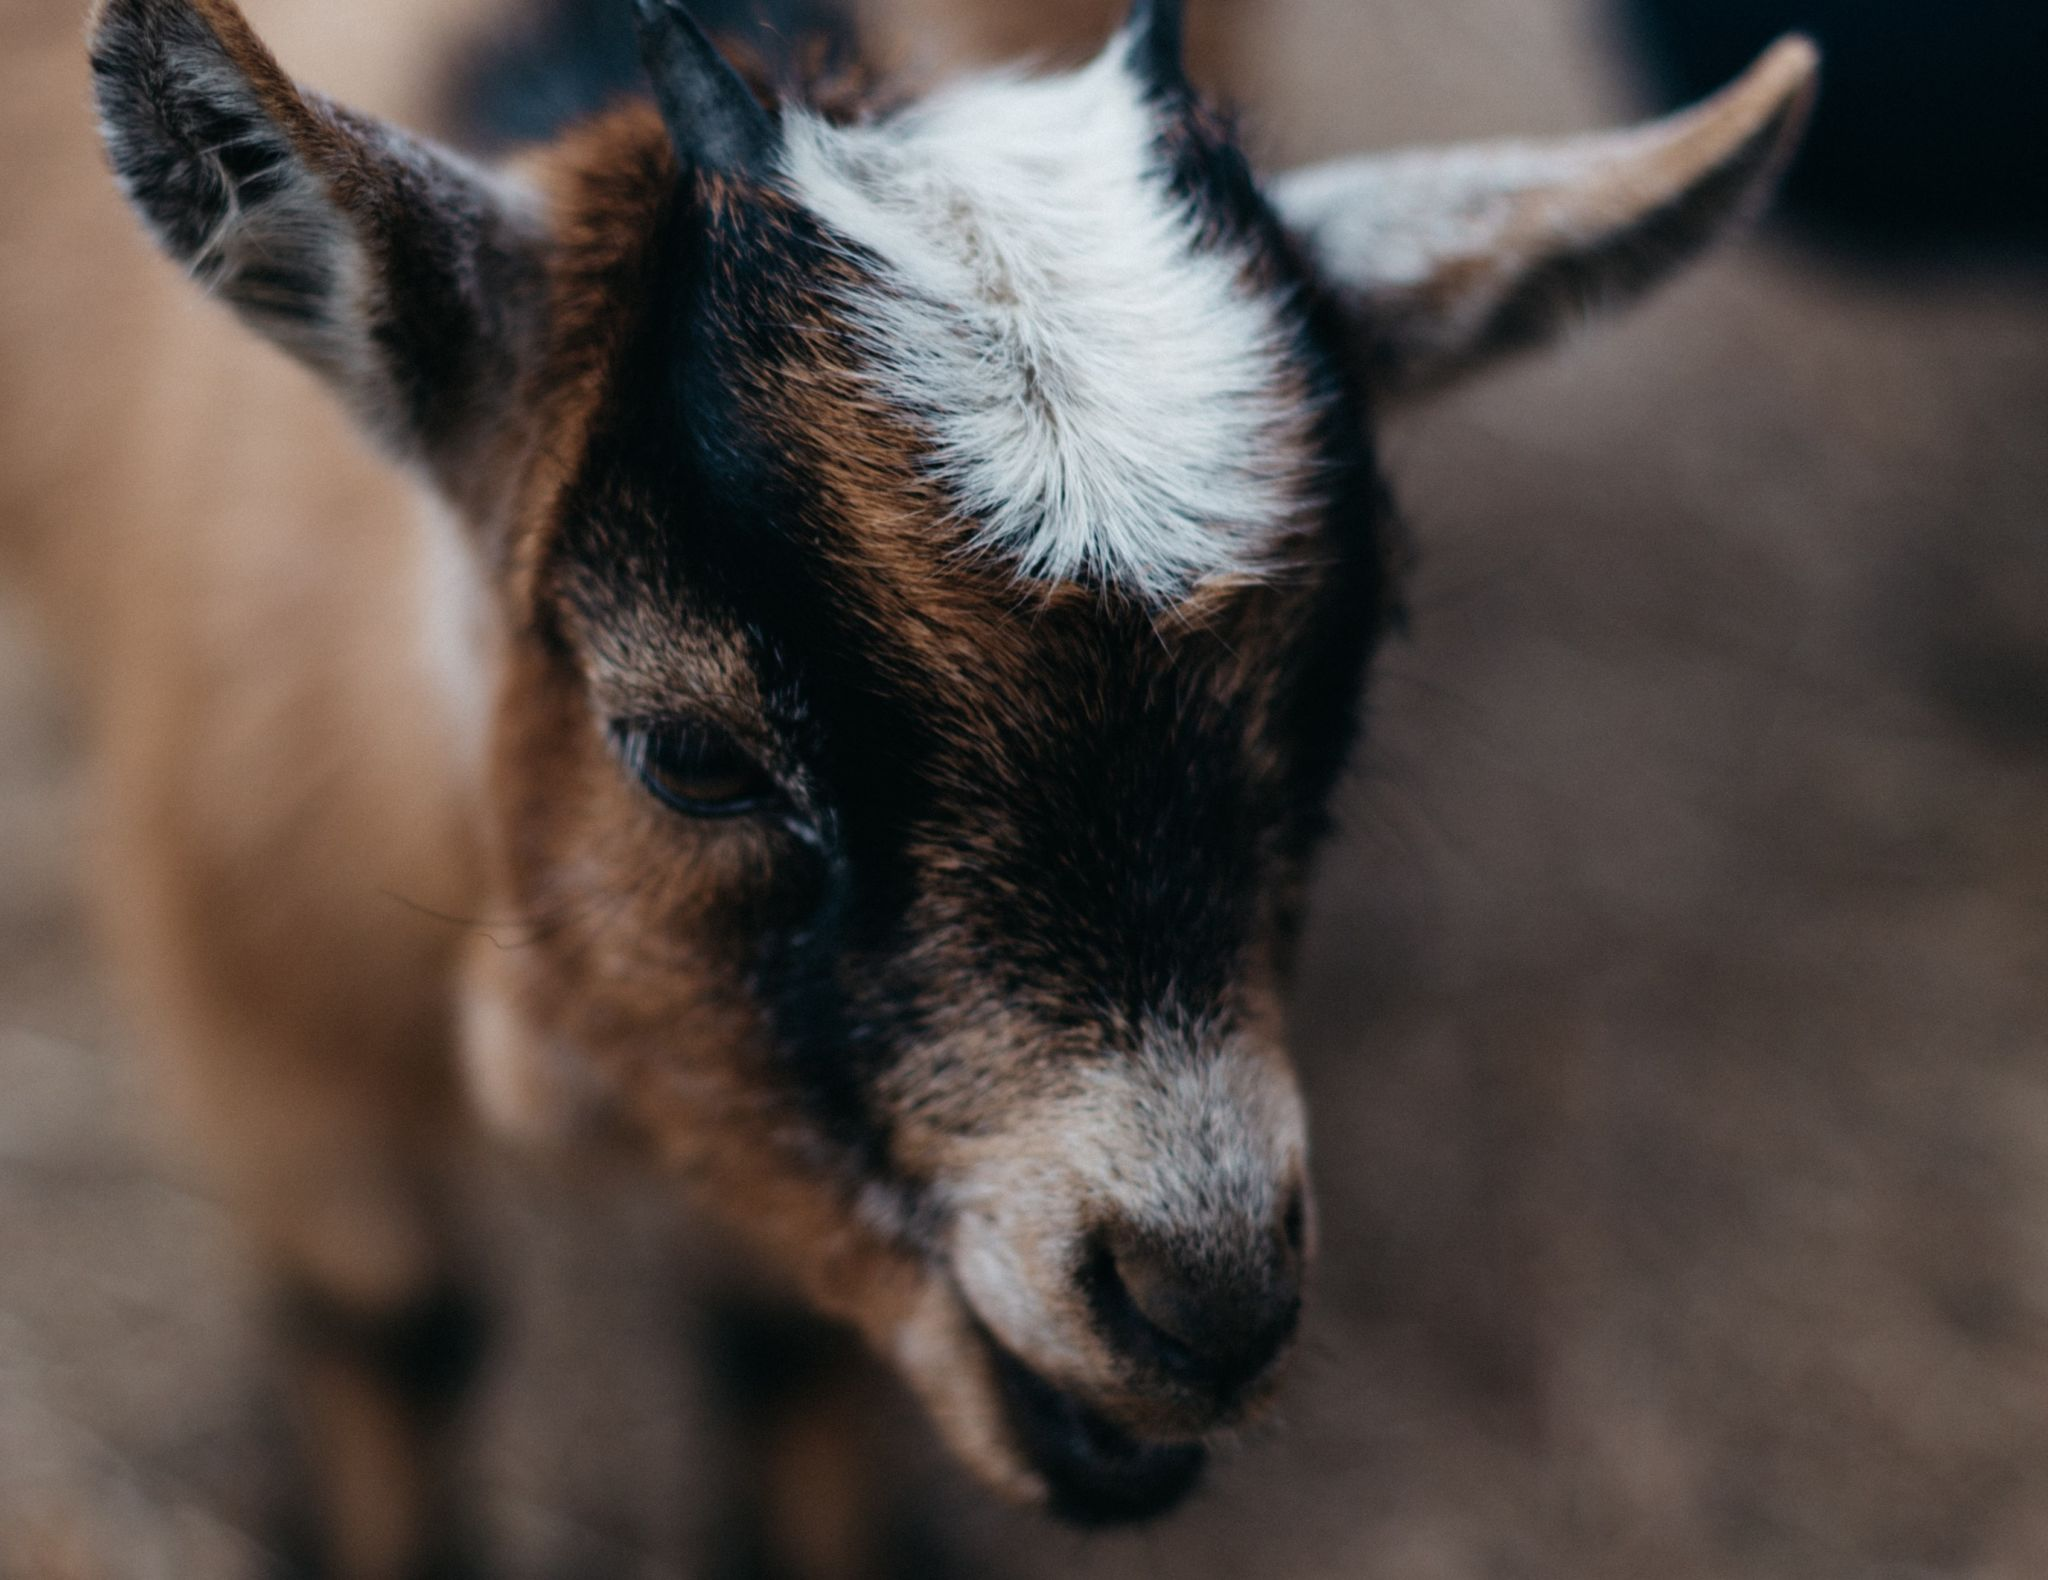 Goat Pregnancy Ultrasound Training